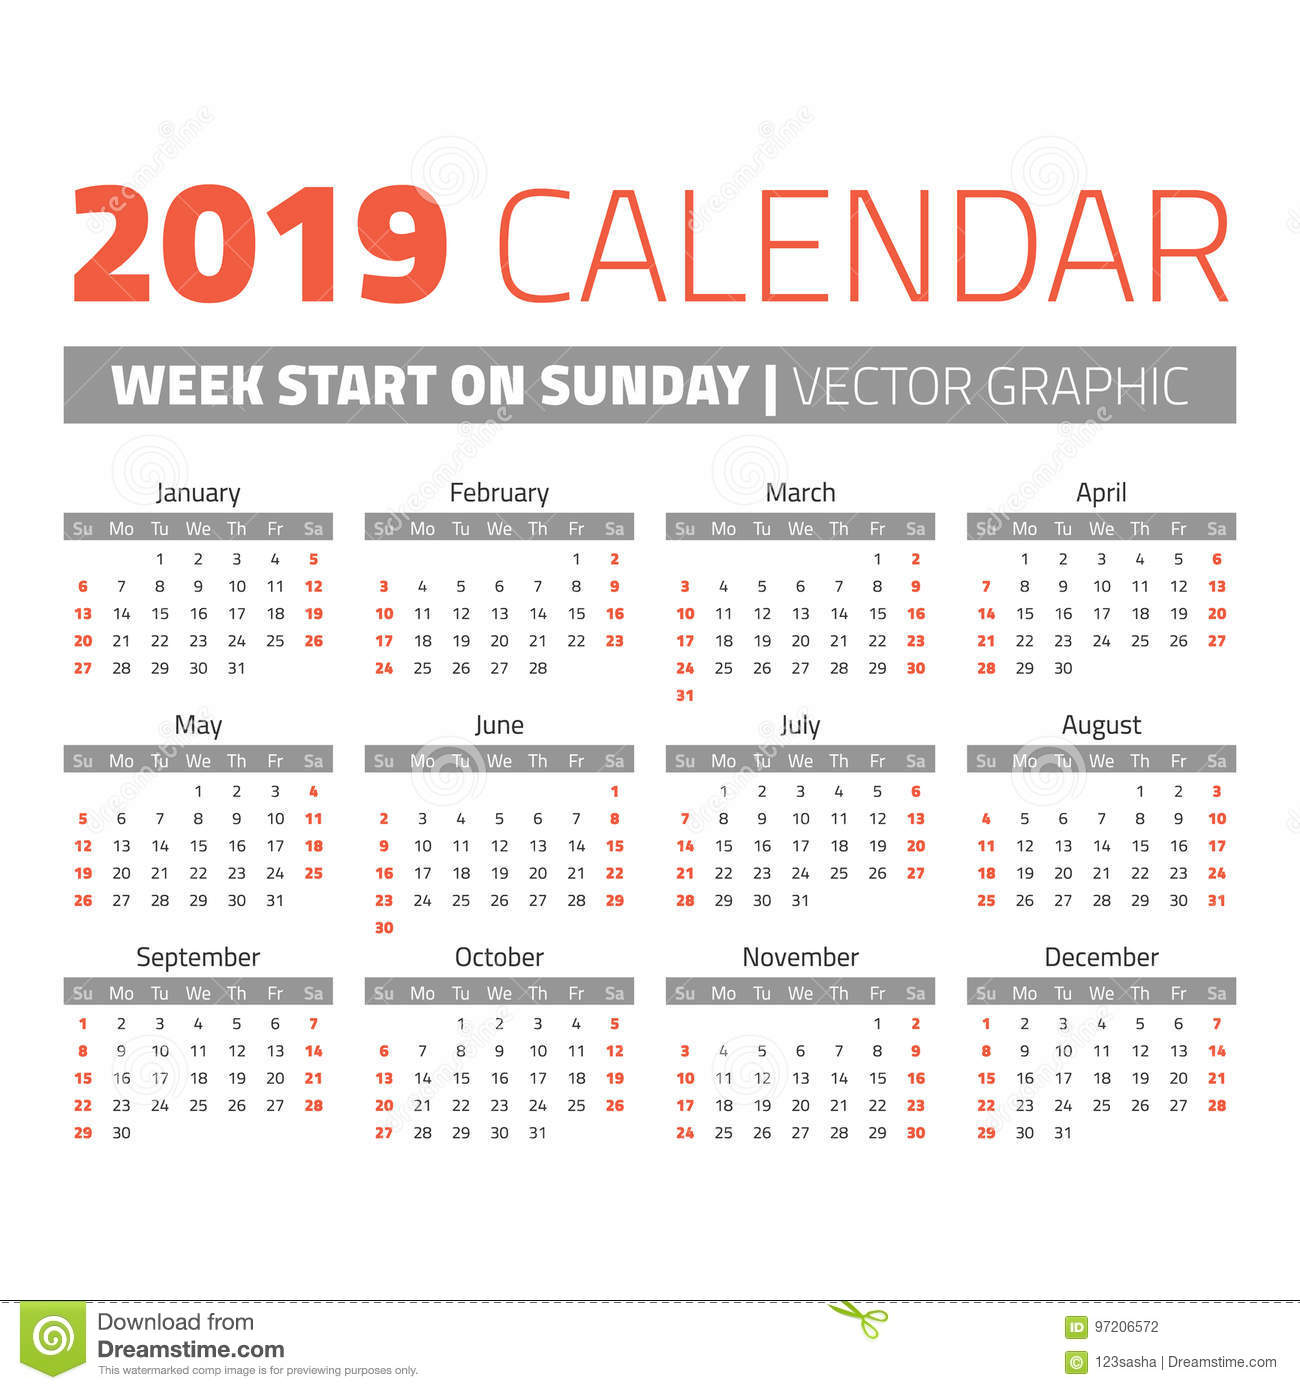 Weeks Of The Year Calendar 2019 Simple 2019 year calendar stock vector. Illustration of date